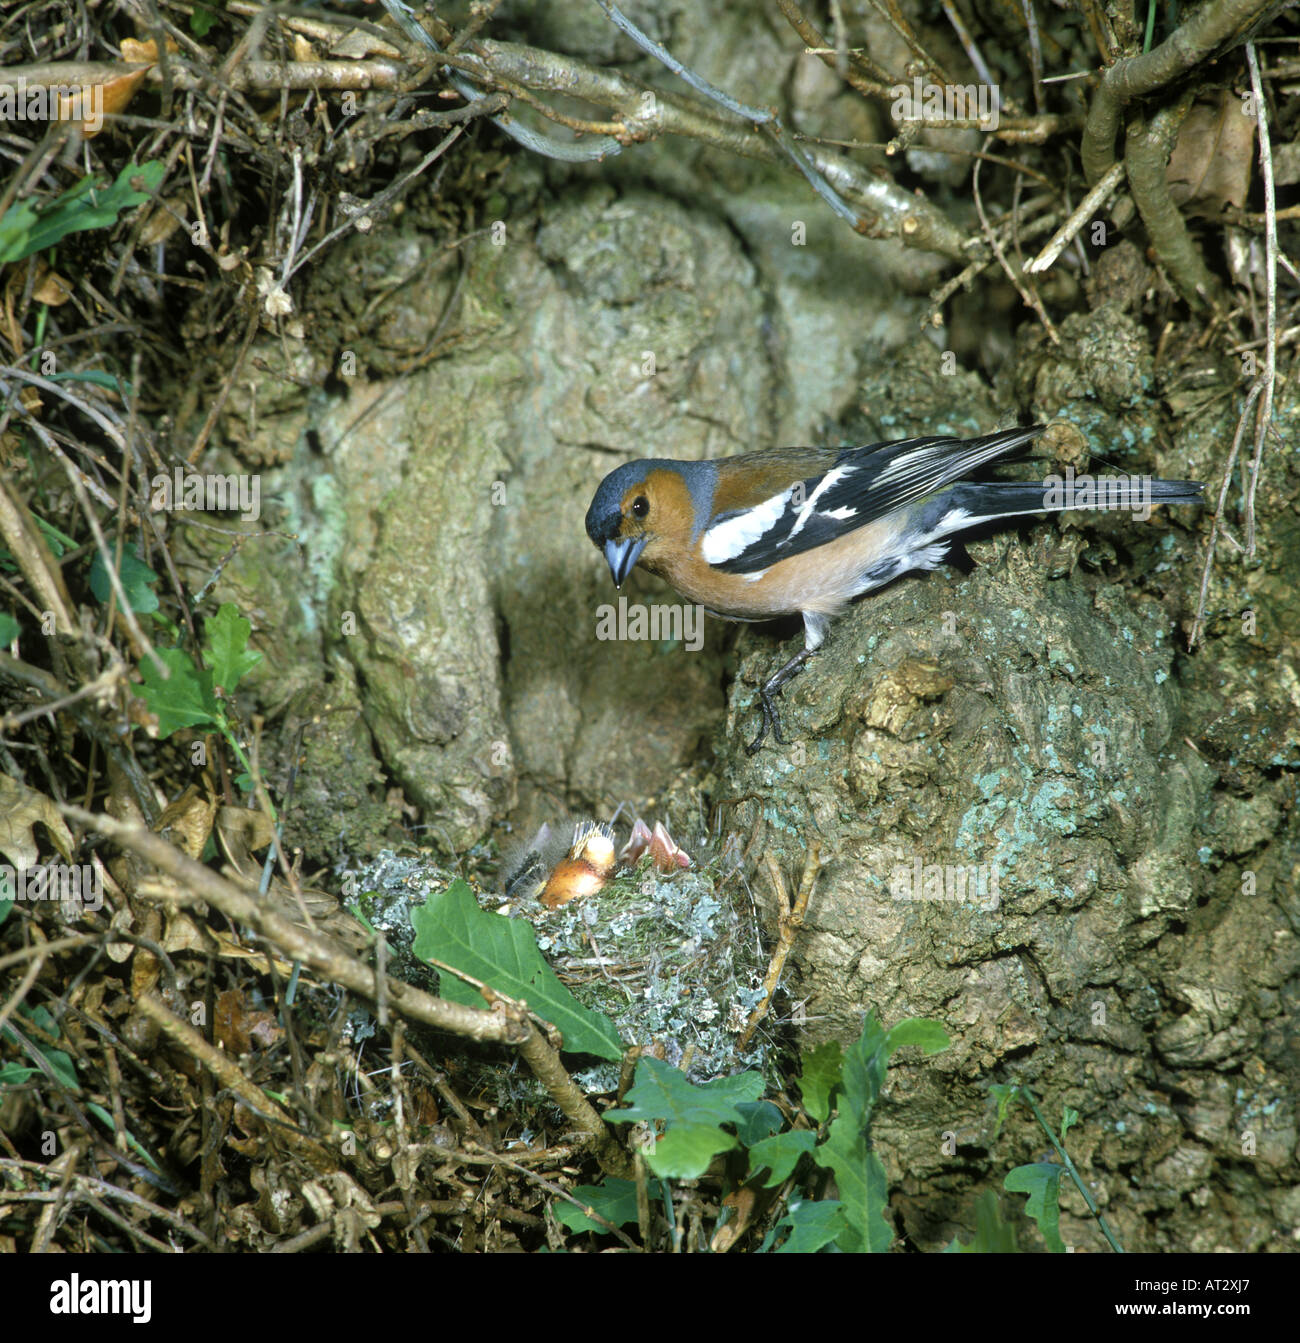 Chaffinch Fringilla coelebs Male at nest in Oak tree young in nest - Stock Image